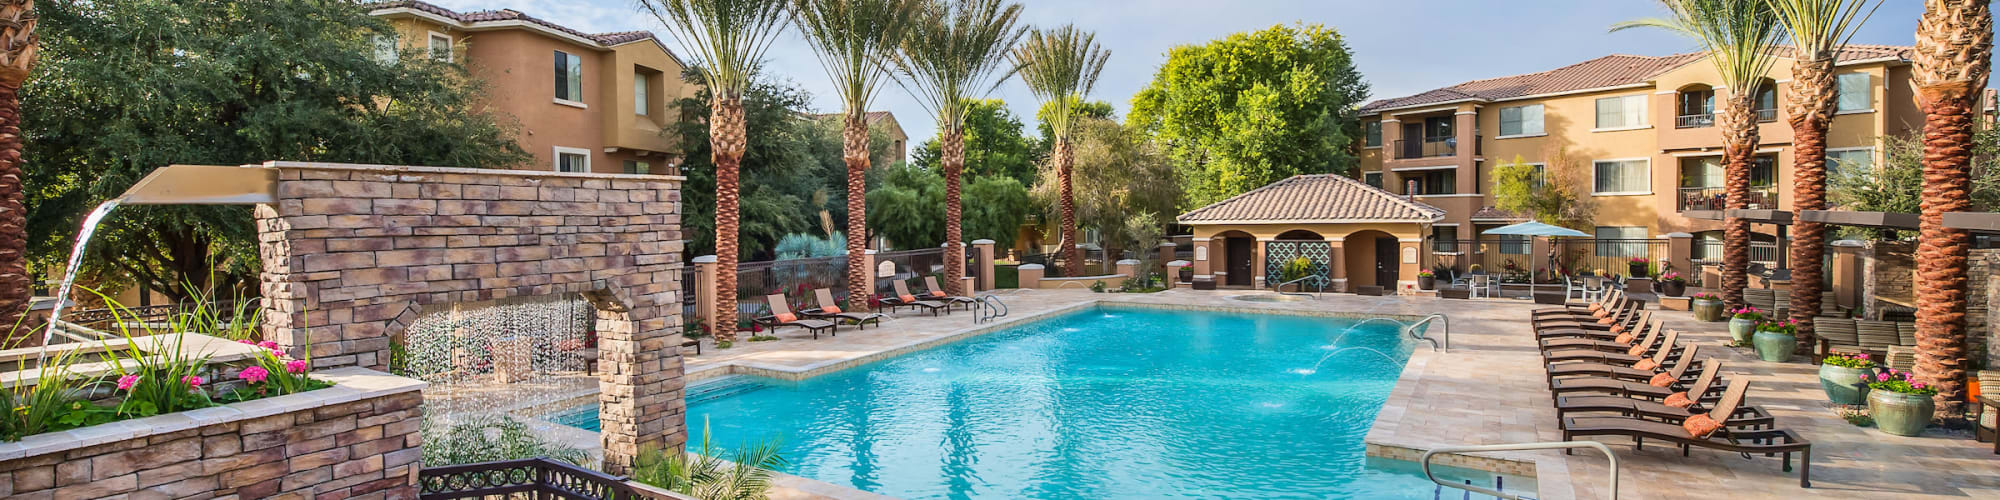 Apply to live at Stone Oaks in Chandler, Arizona